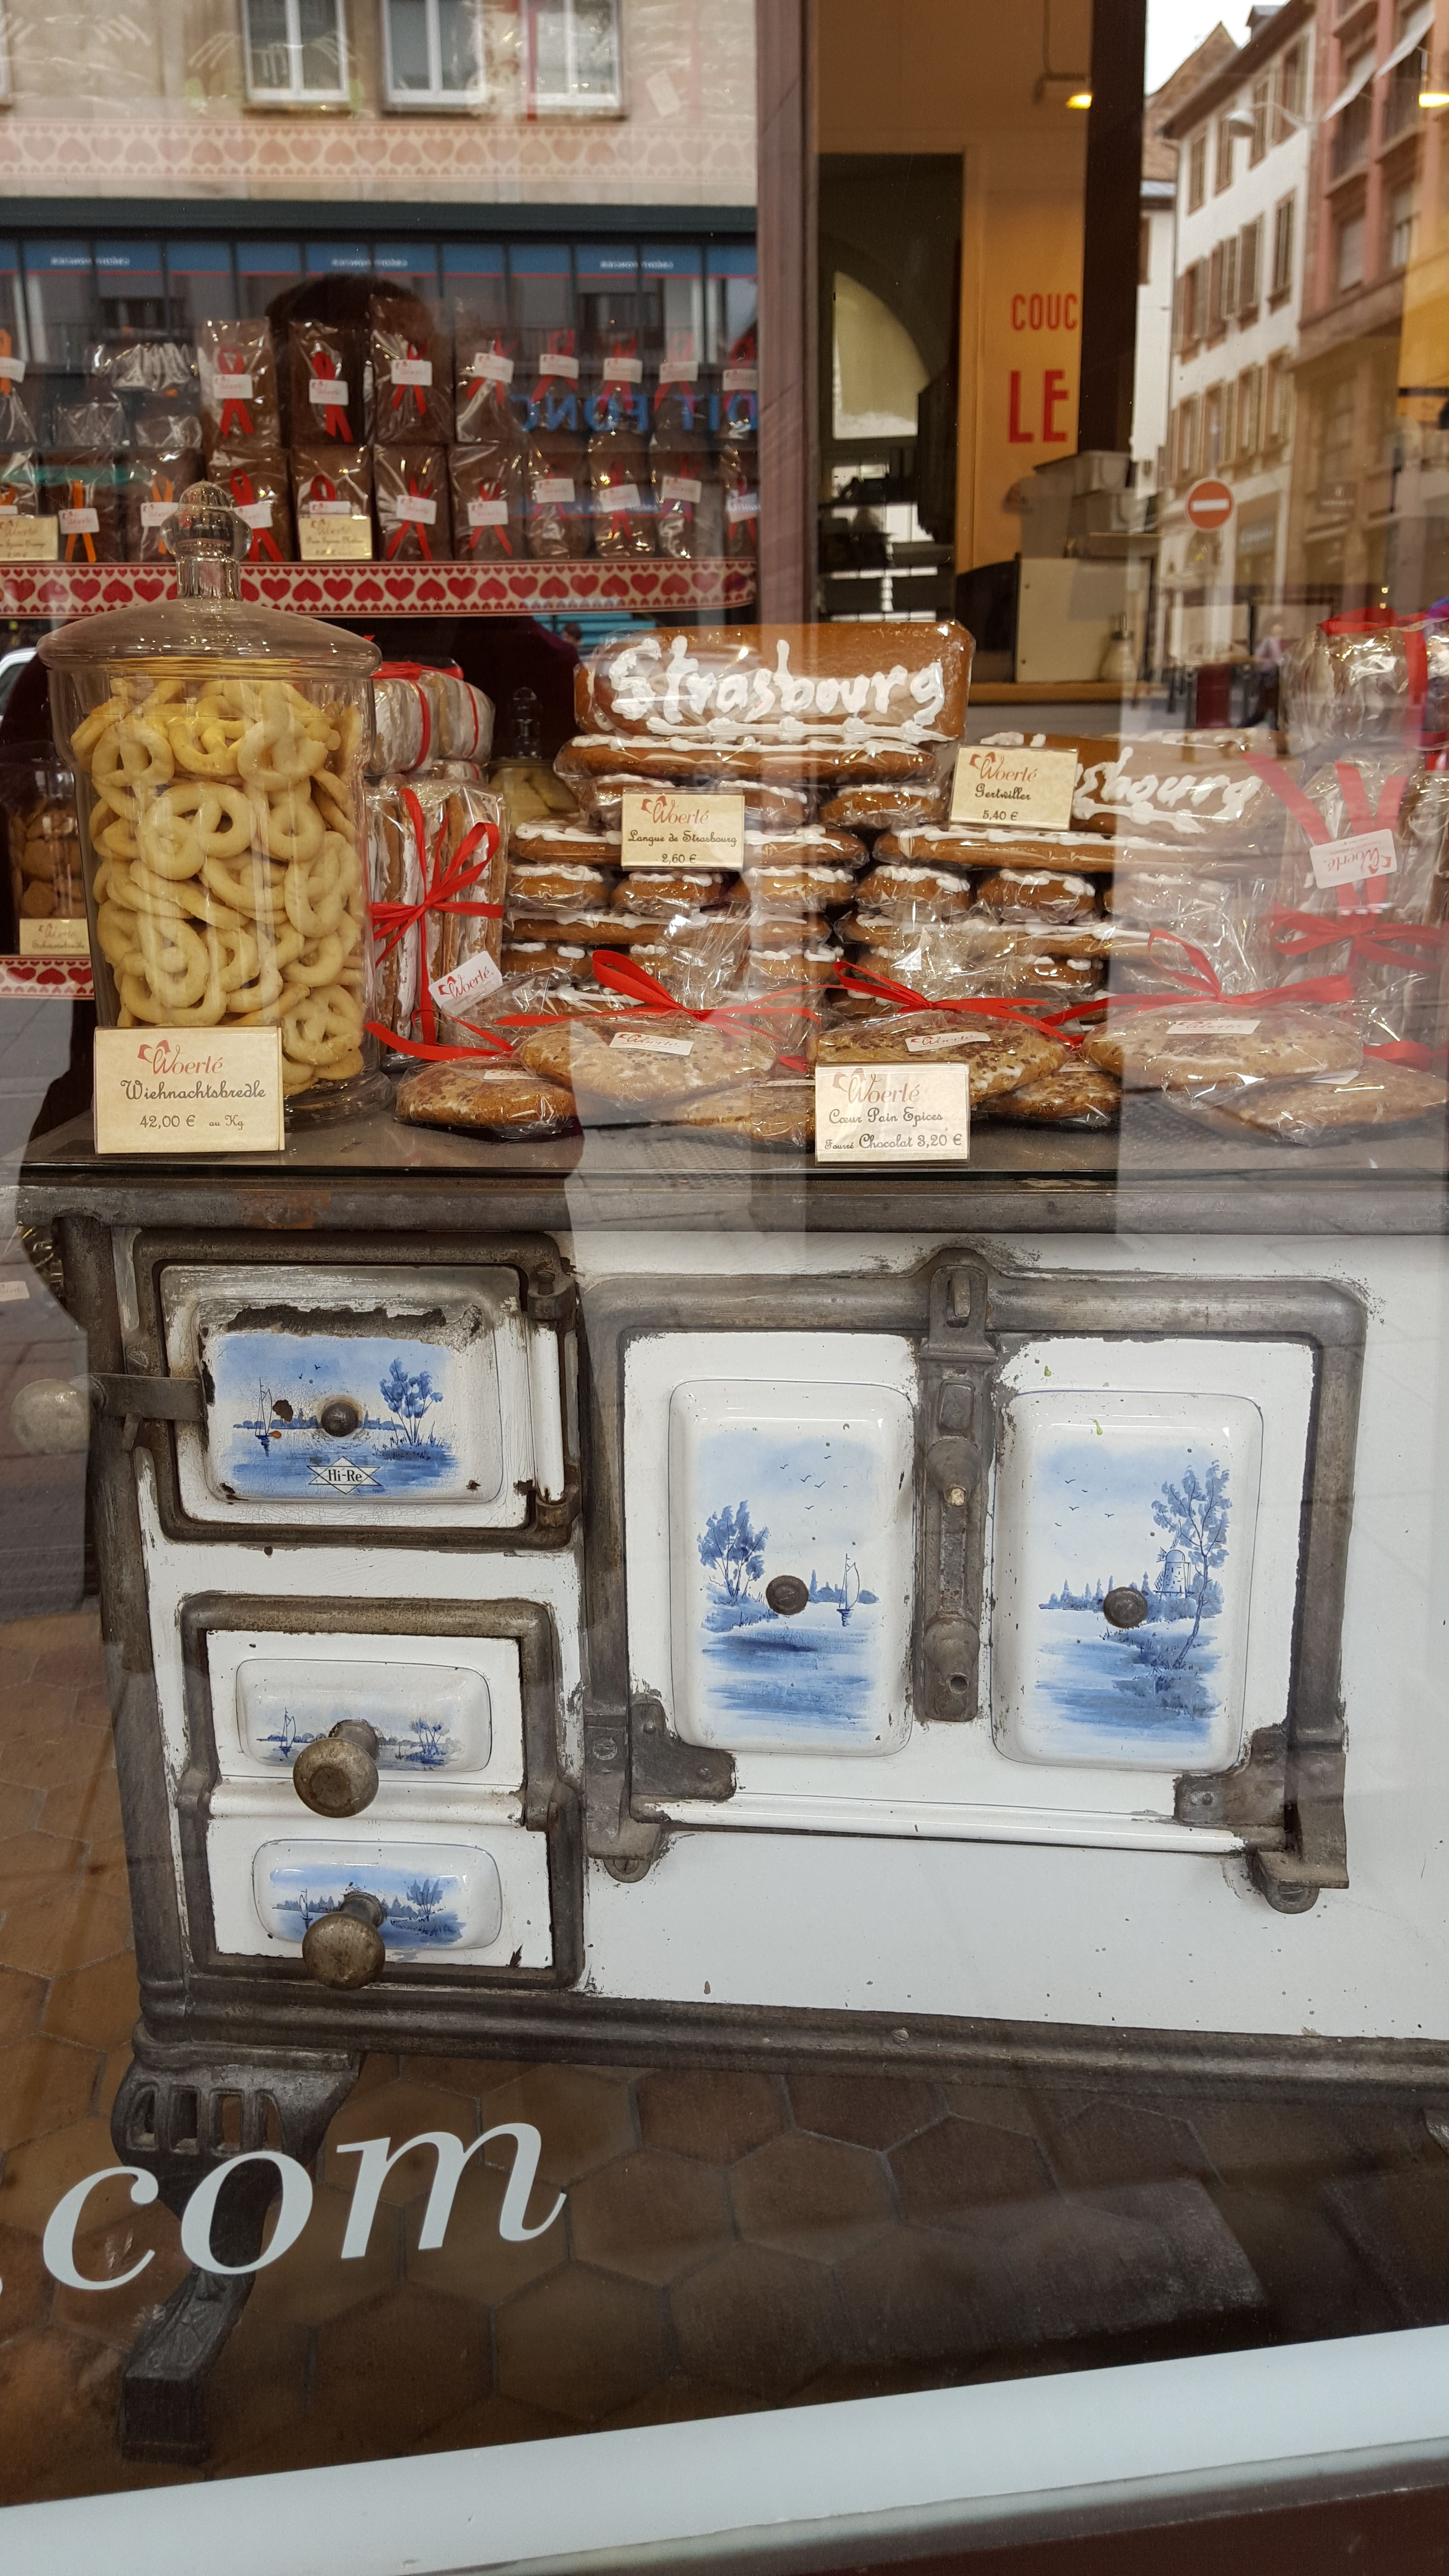 German bakery with antique stove